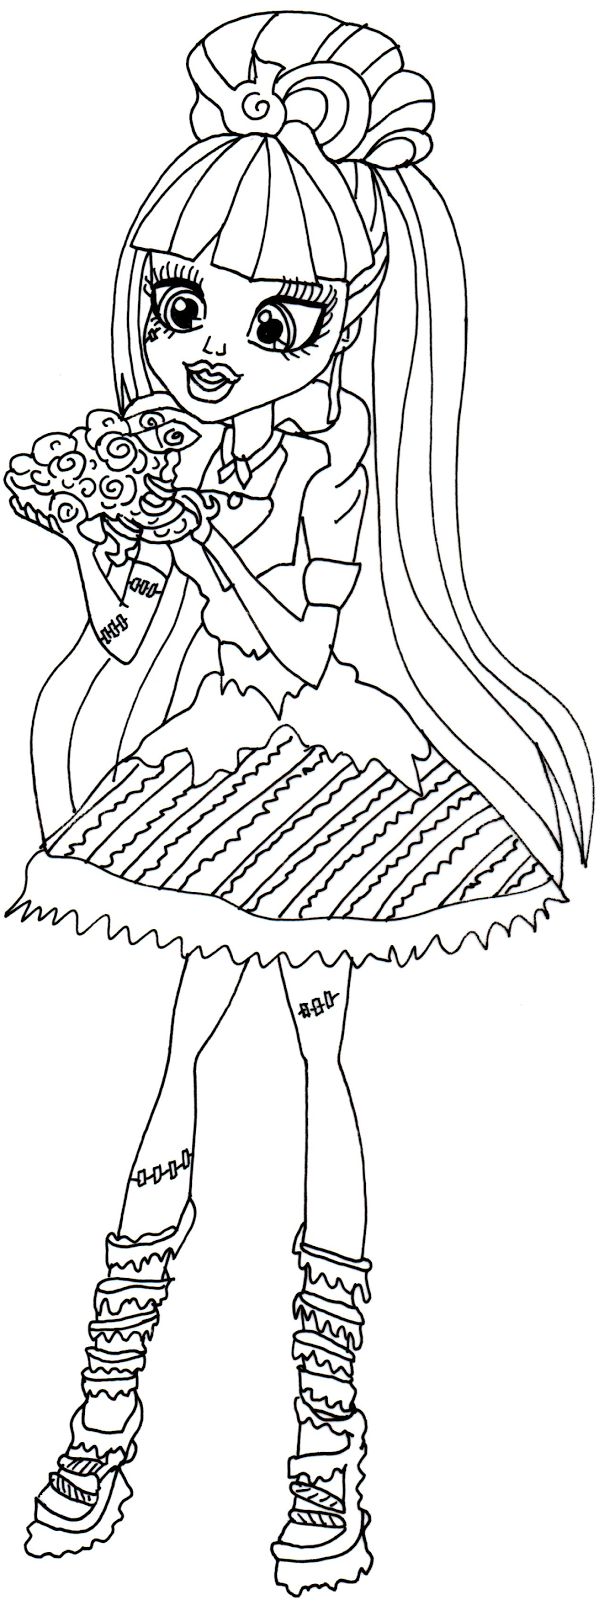 venus mcflaytrap monster high free coloring pages